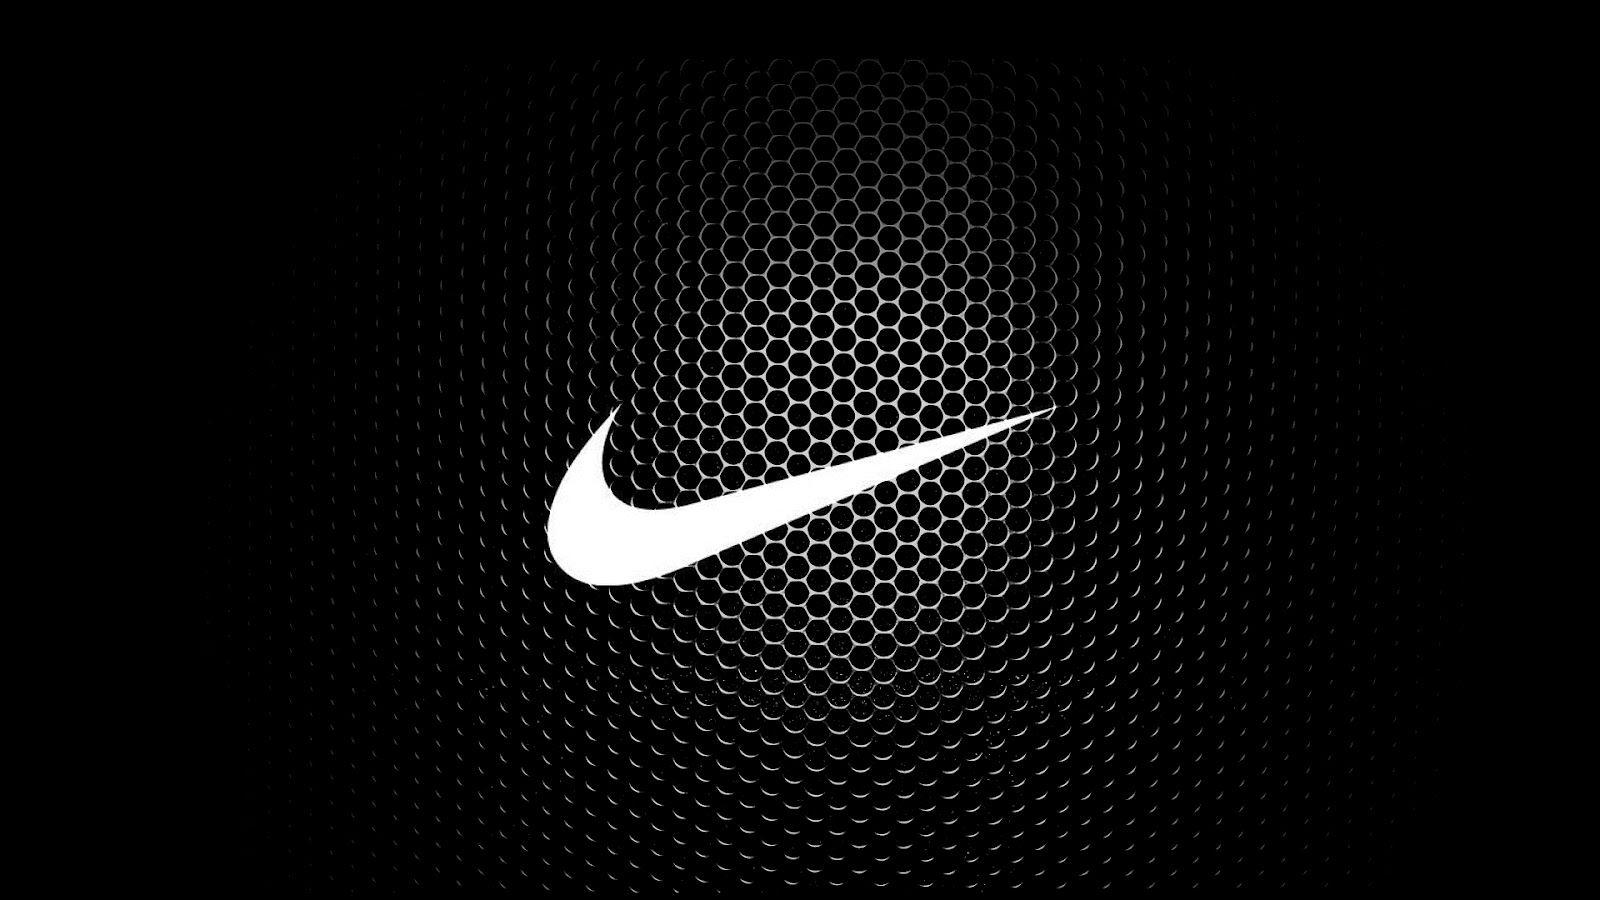 Nike Football Wallpapers For Iphone Wallpaper Cave